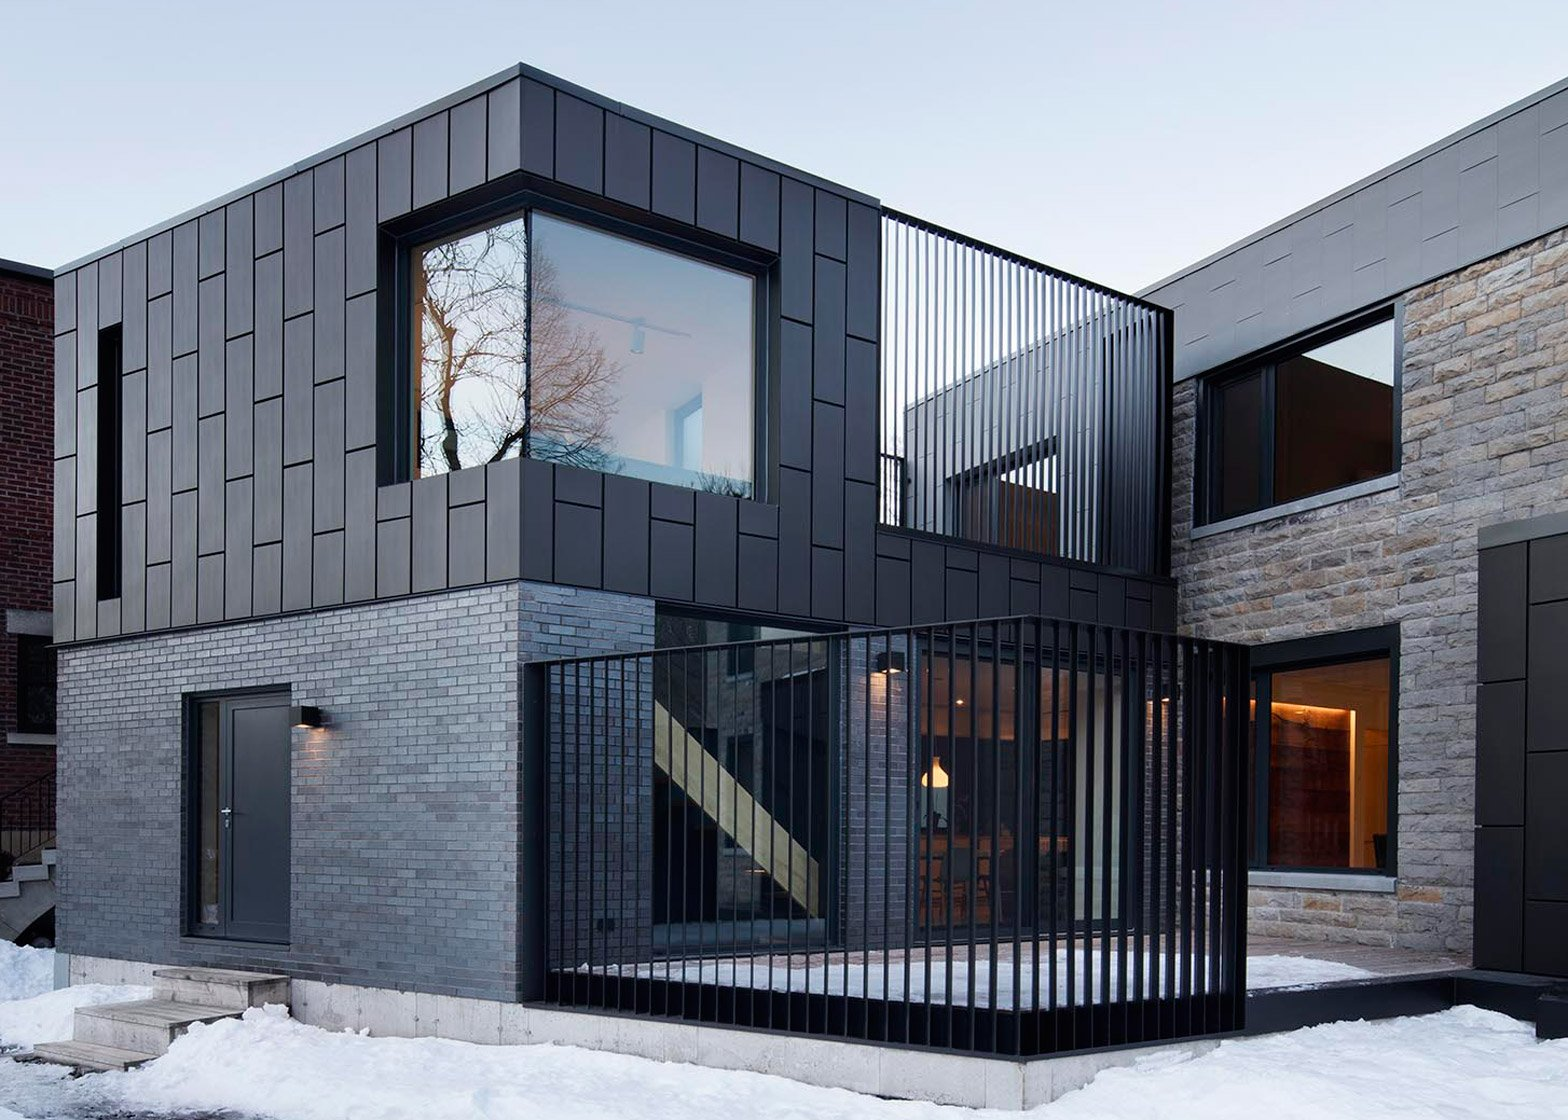 Exceptionnel Naturehumaine adds zinc-clad extension to Montreal home SD17